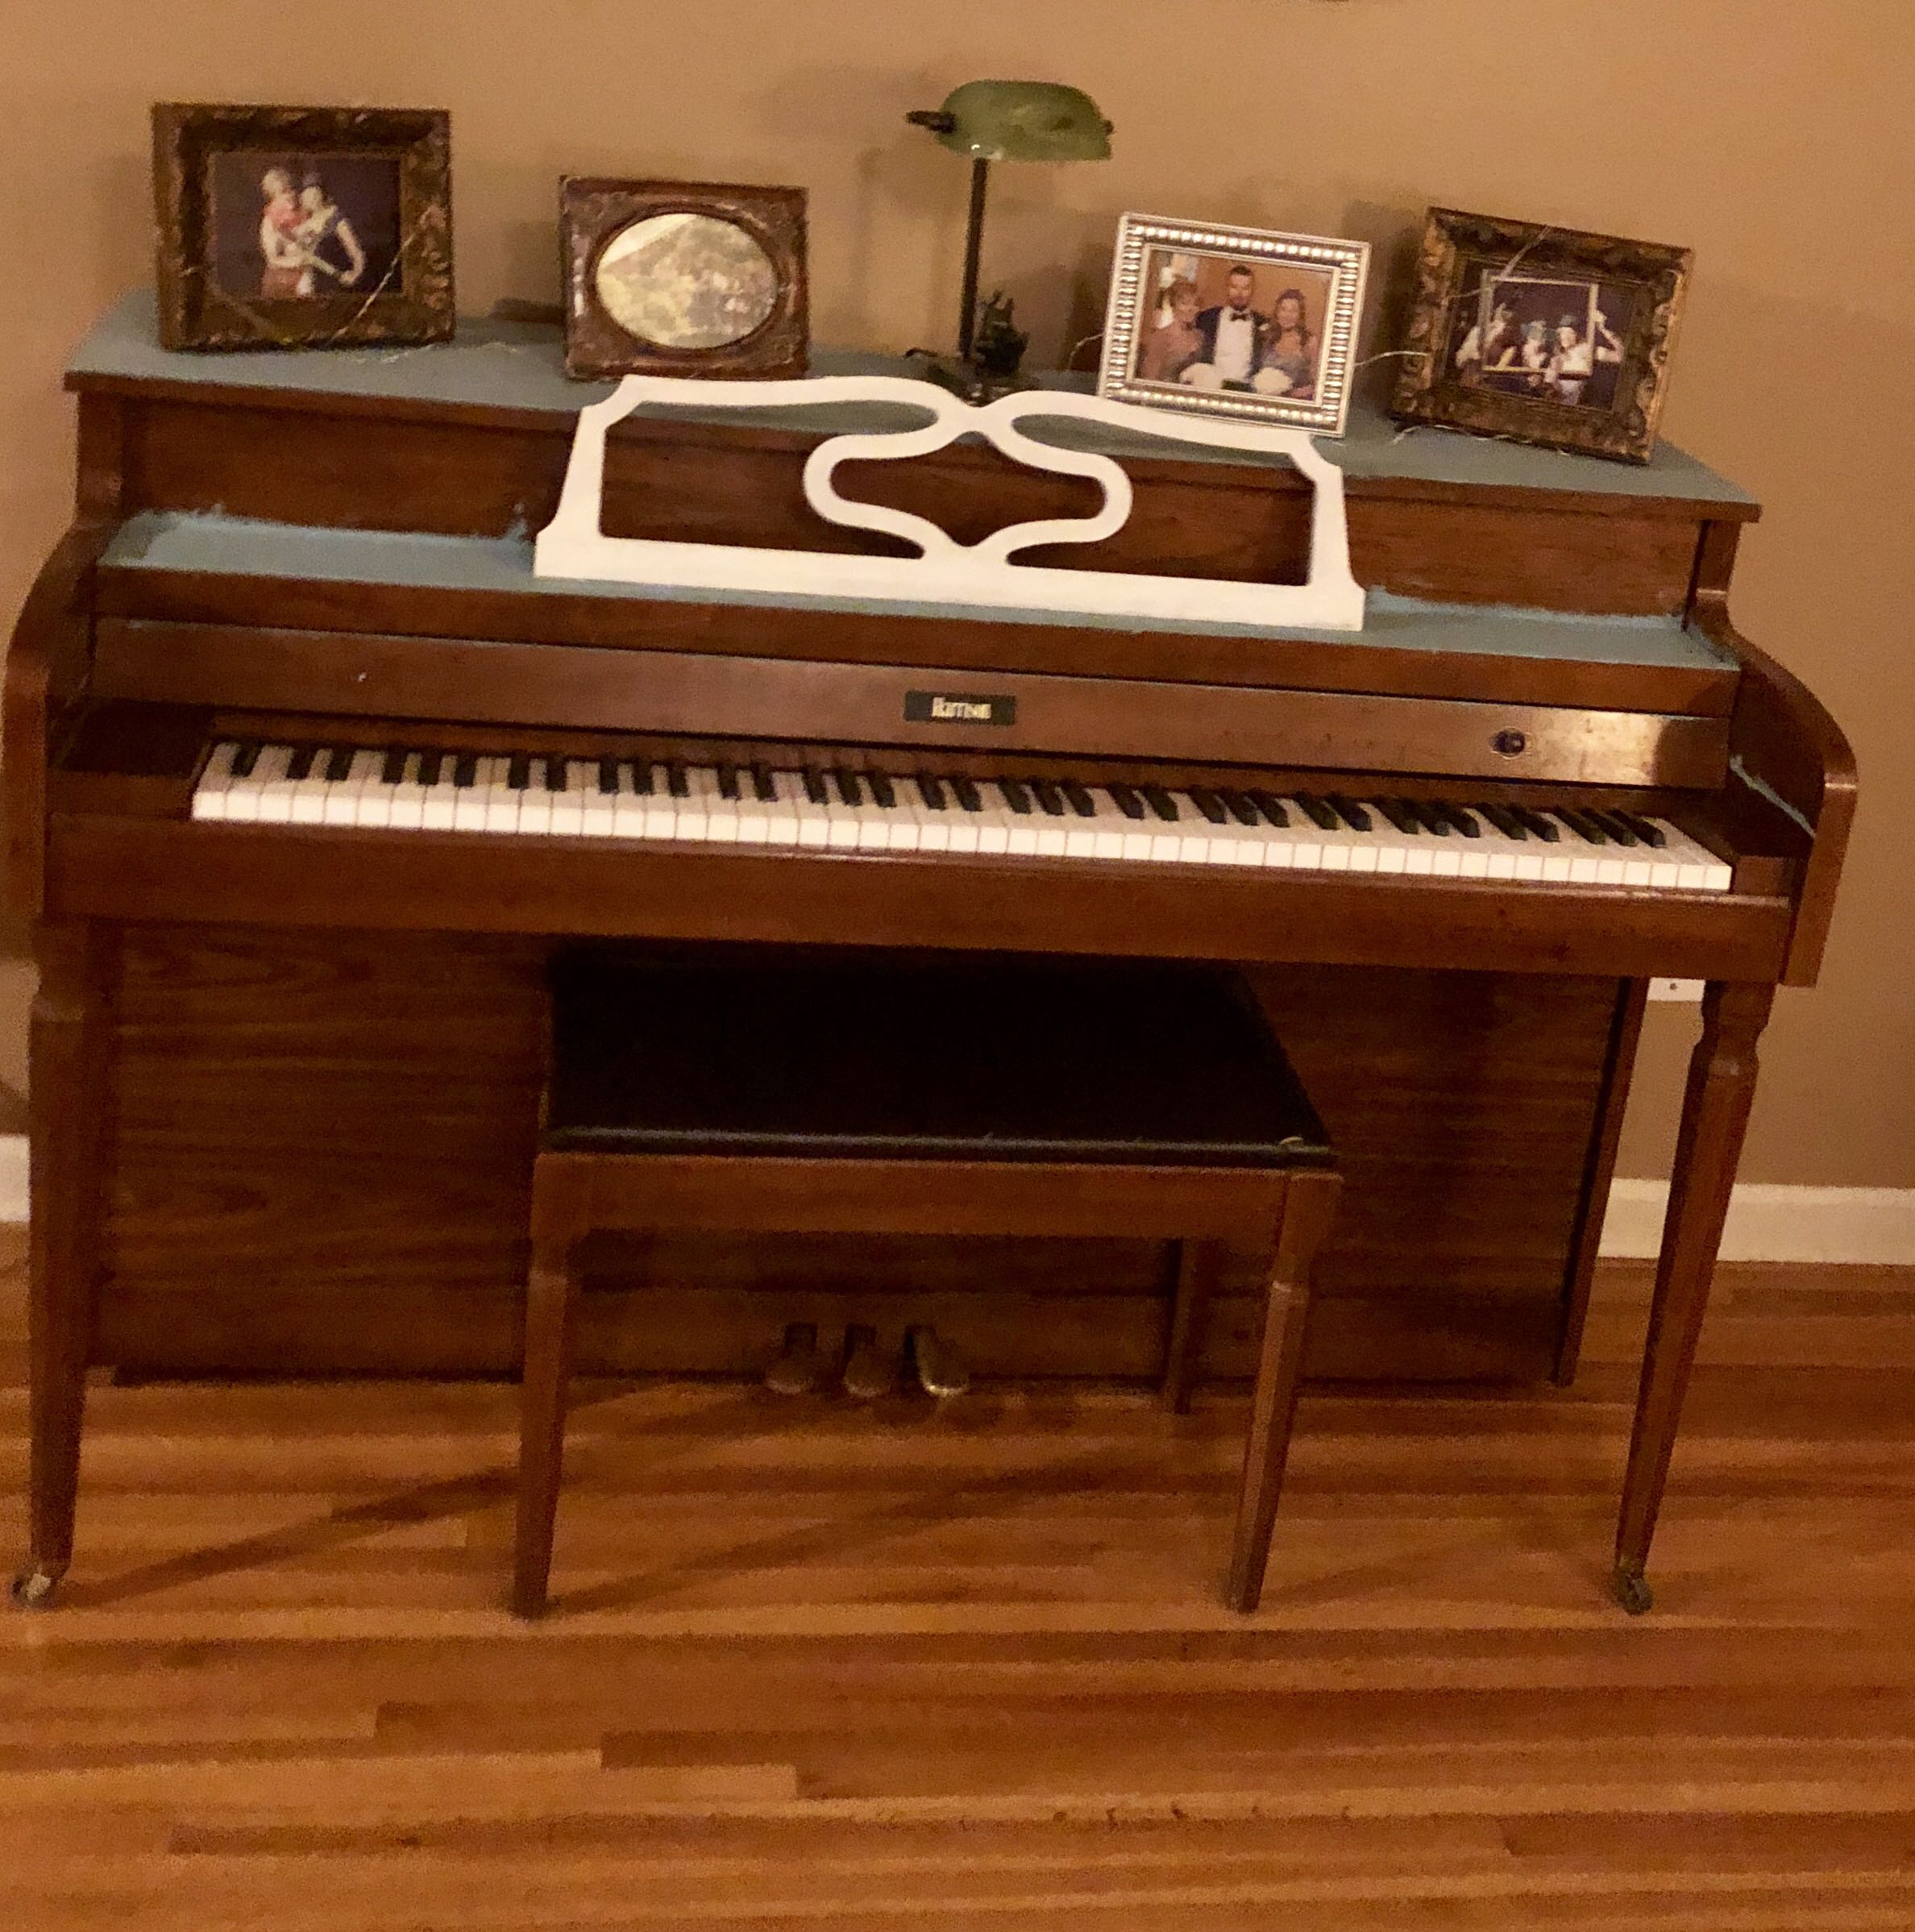 Console piano must go!